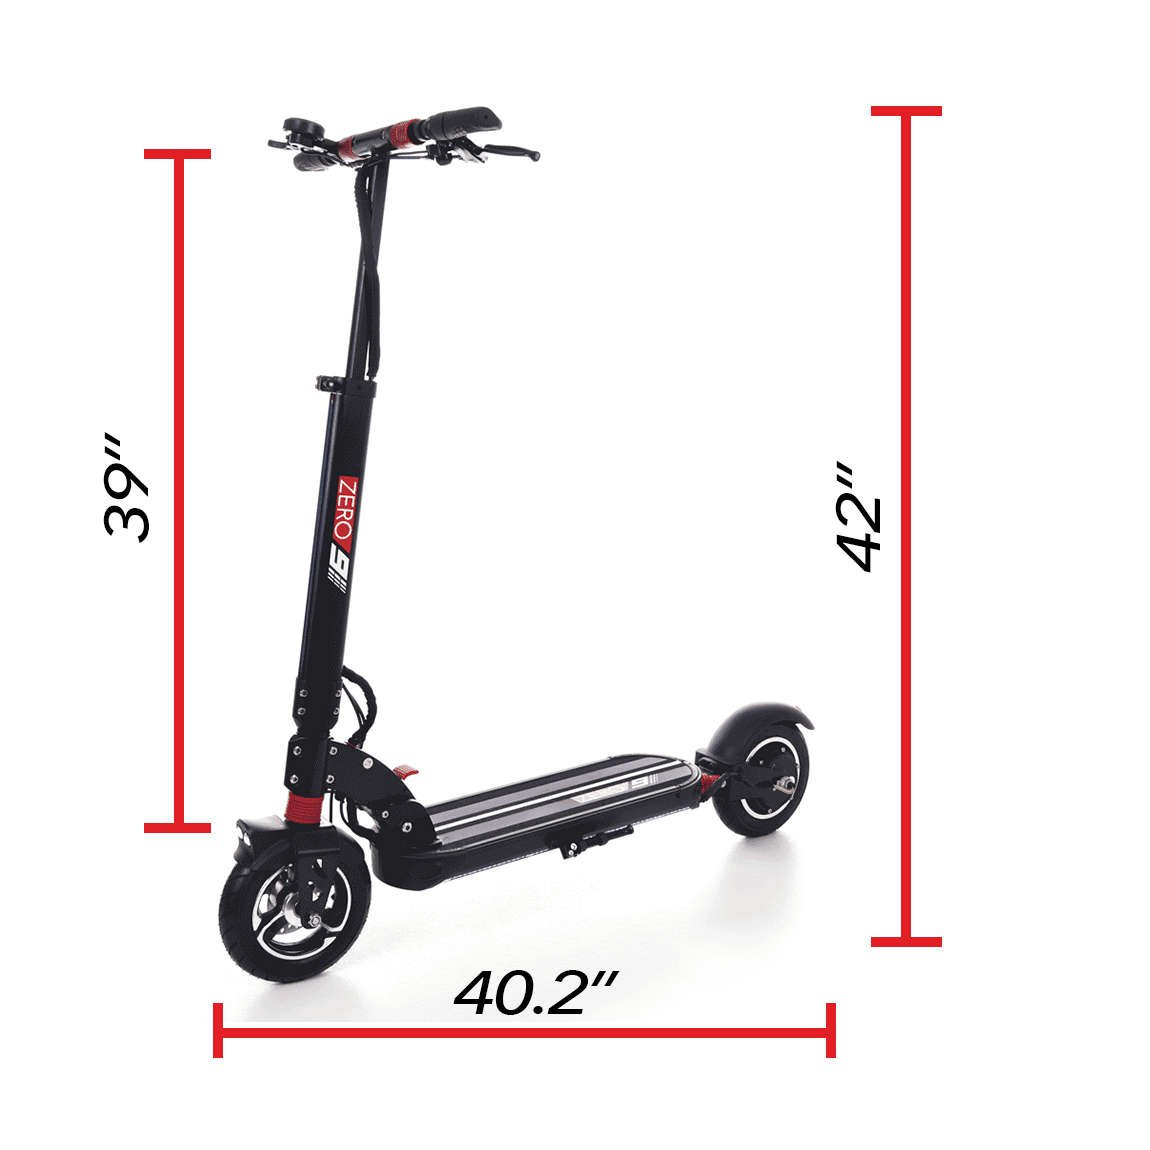 zero 9 electric scooter dimensions unfolded